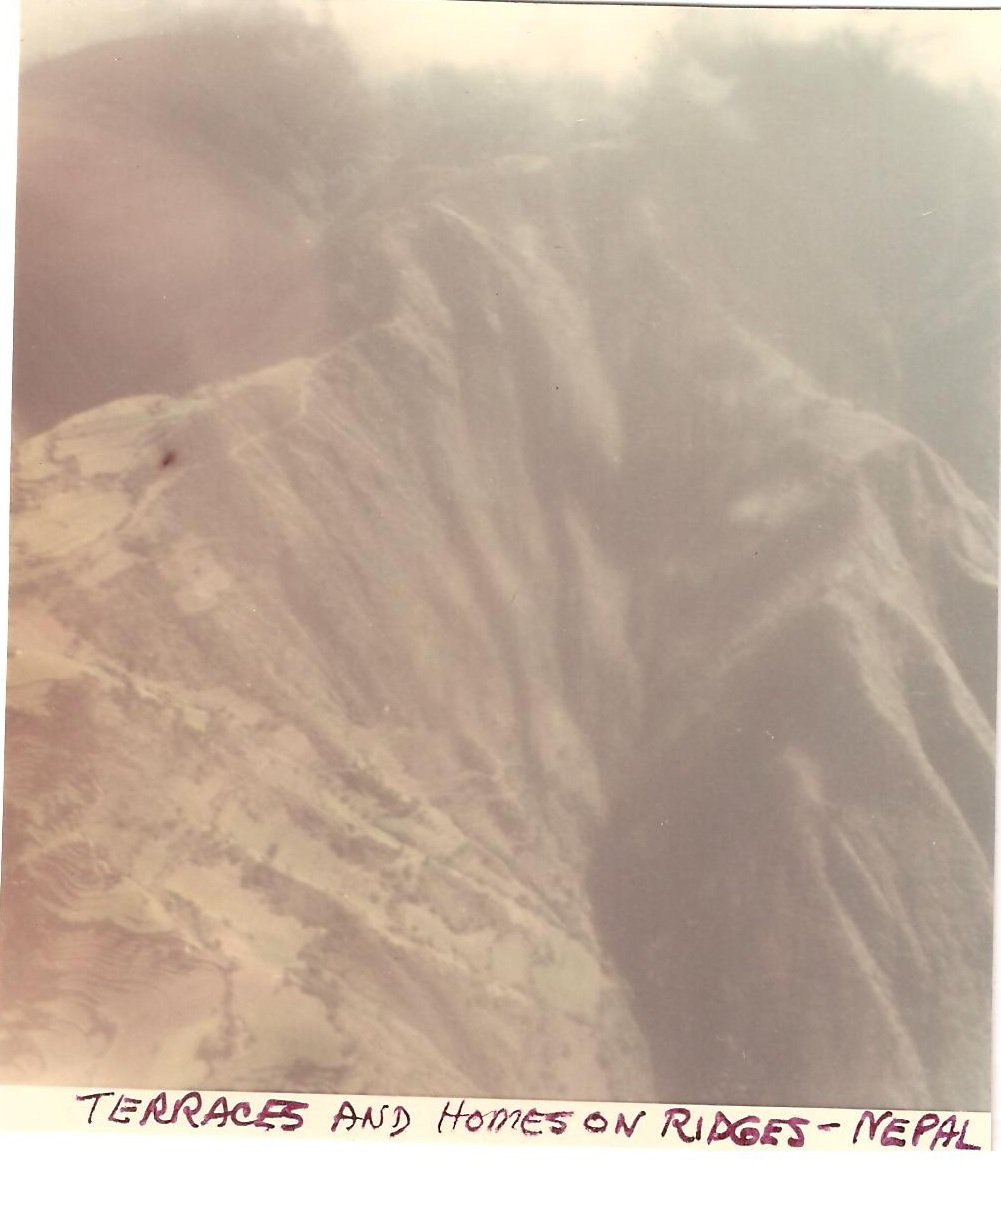 Vintage Photograph Terraces Homes on Ridges Himalayas Nepal 1968